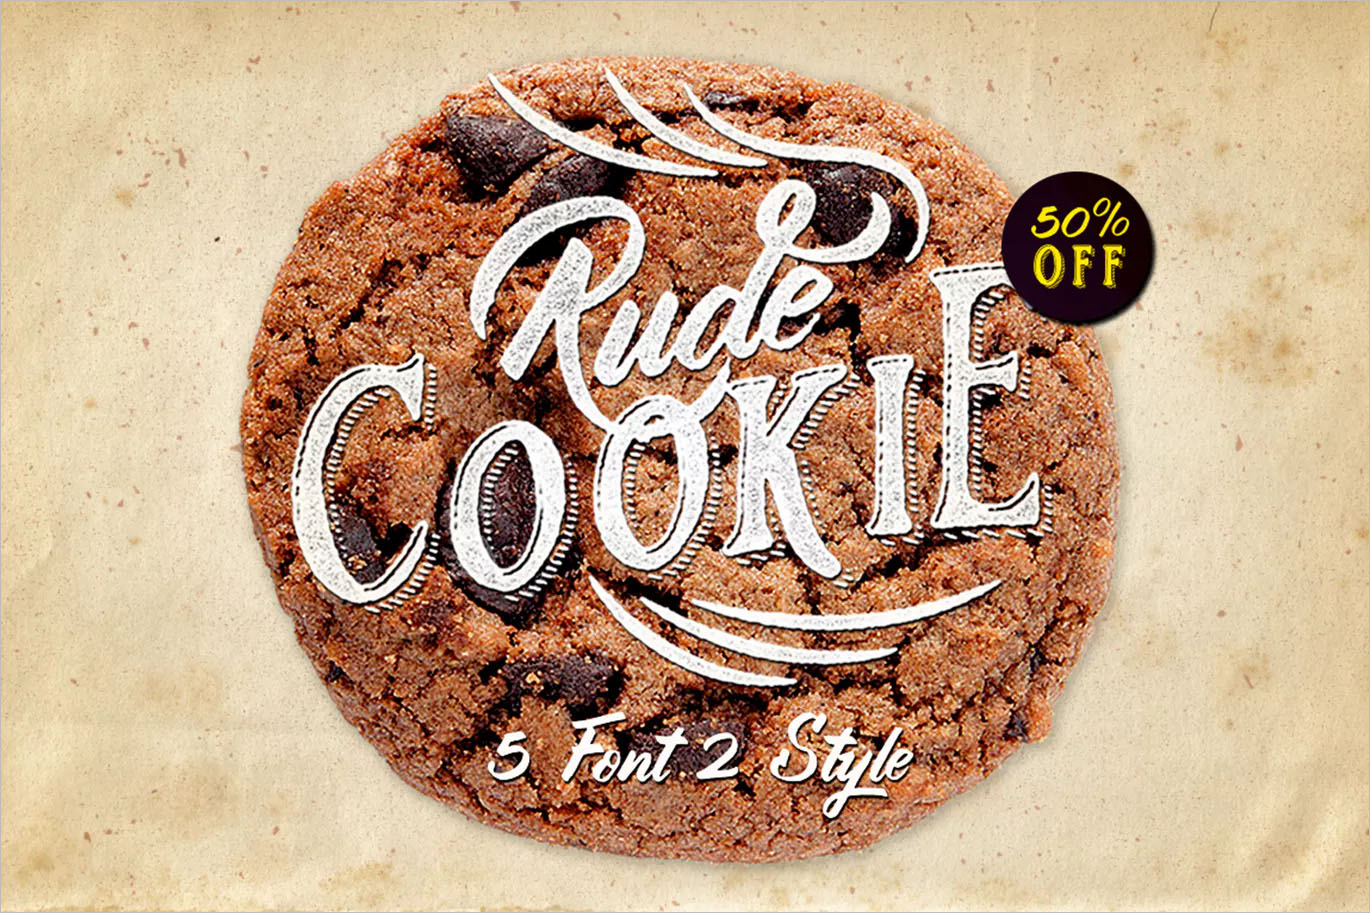 Rude Cookie Font Layer